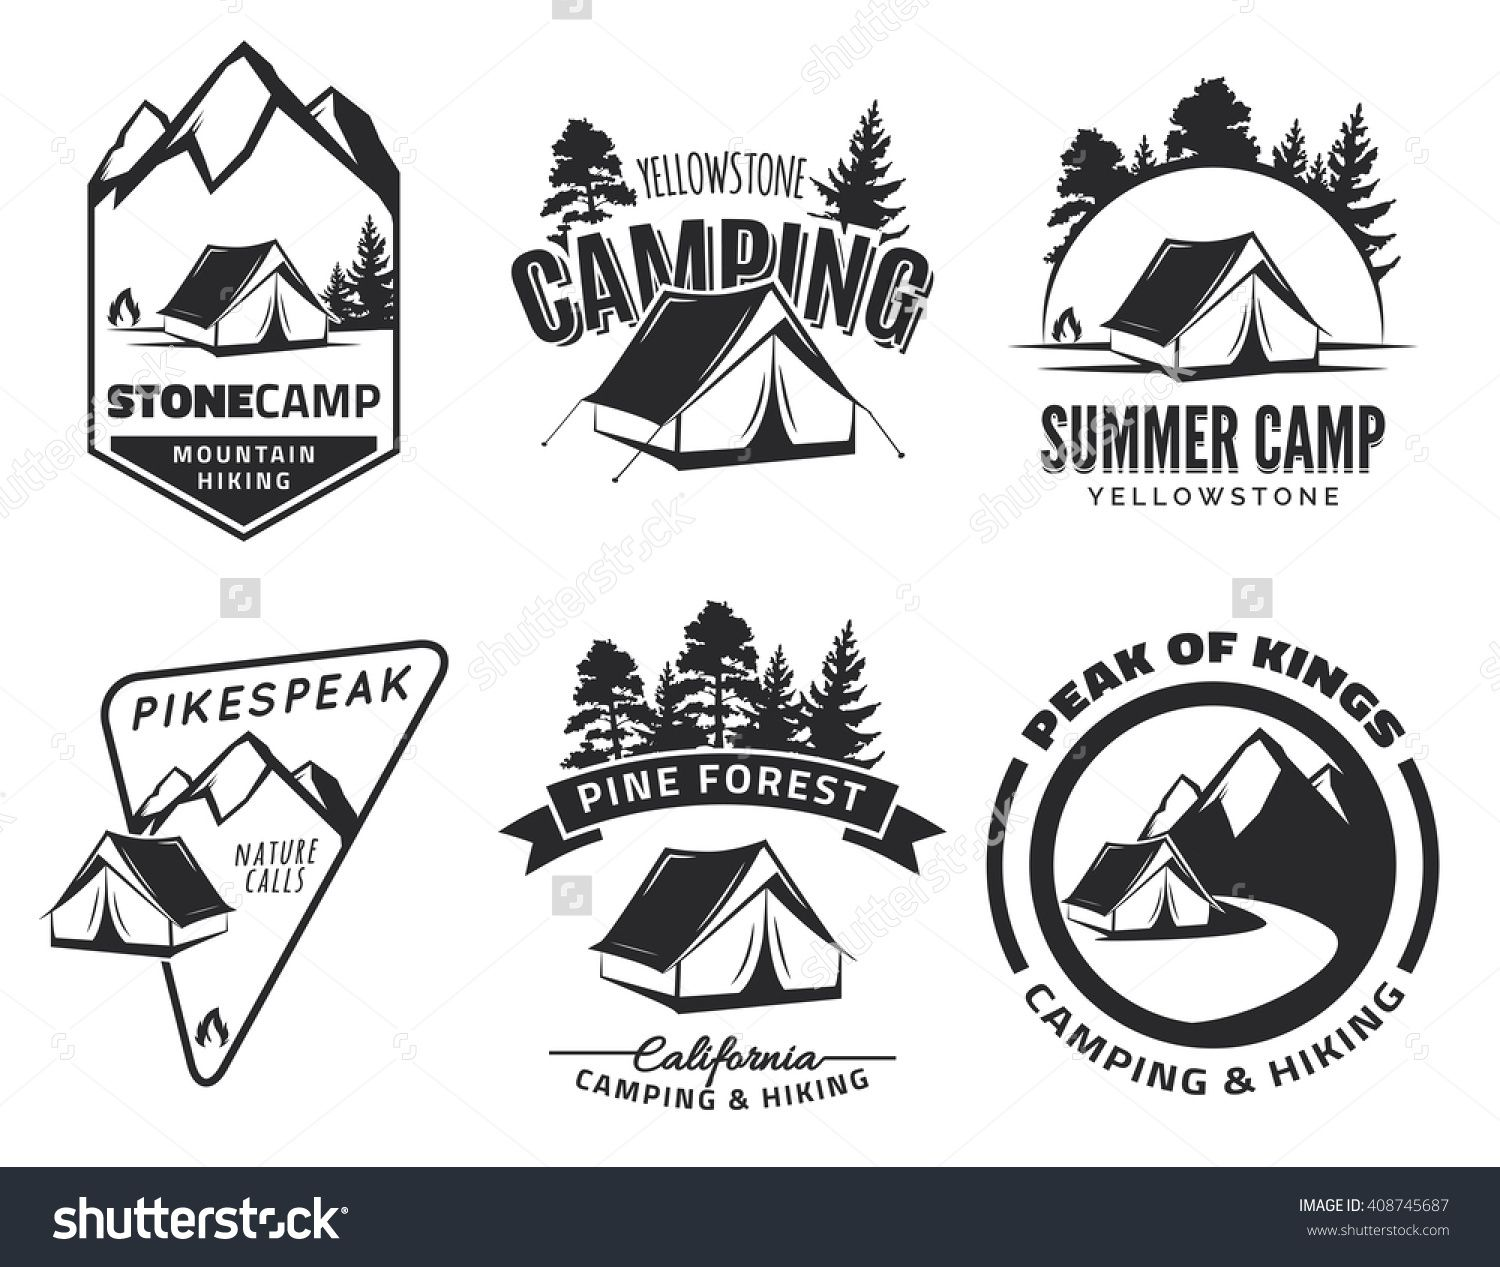 Badge clipart camping. Set of vintage and